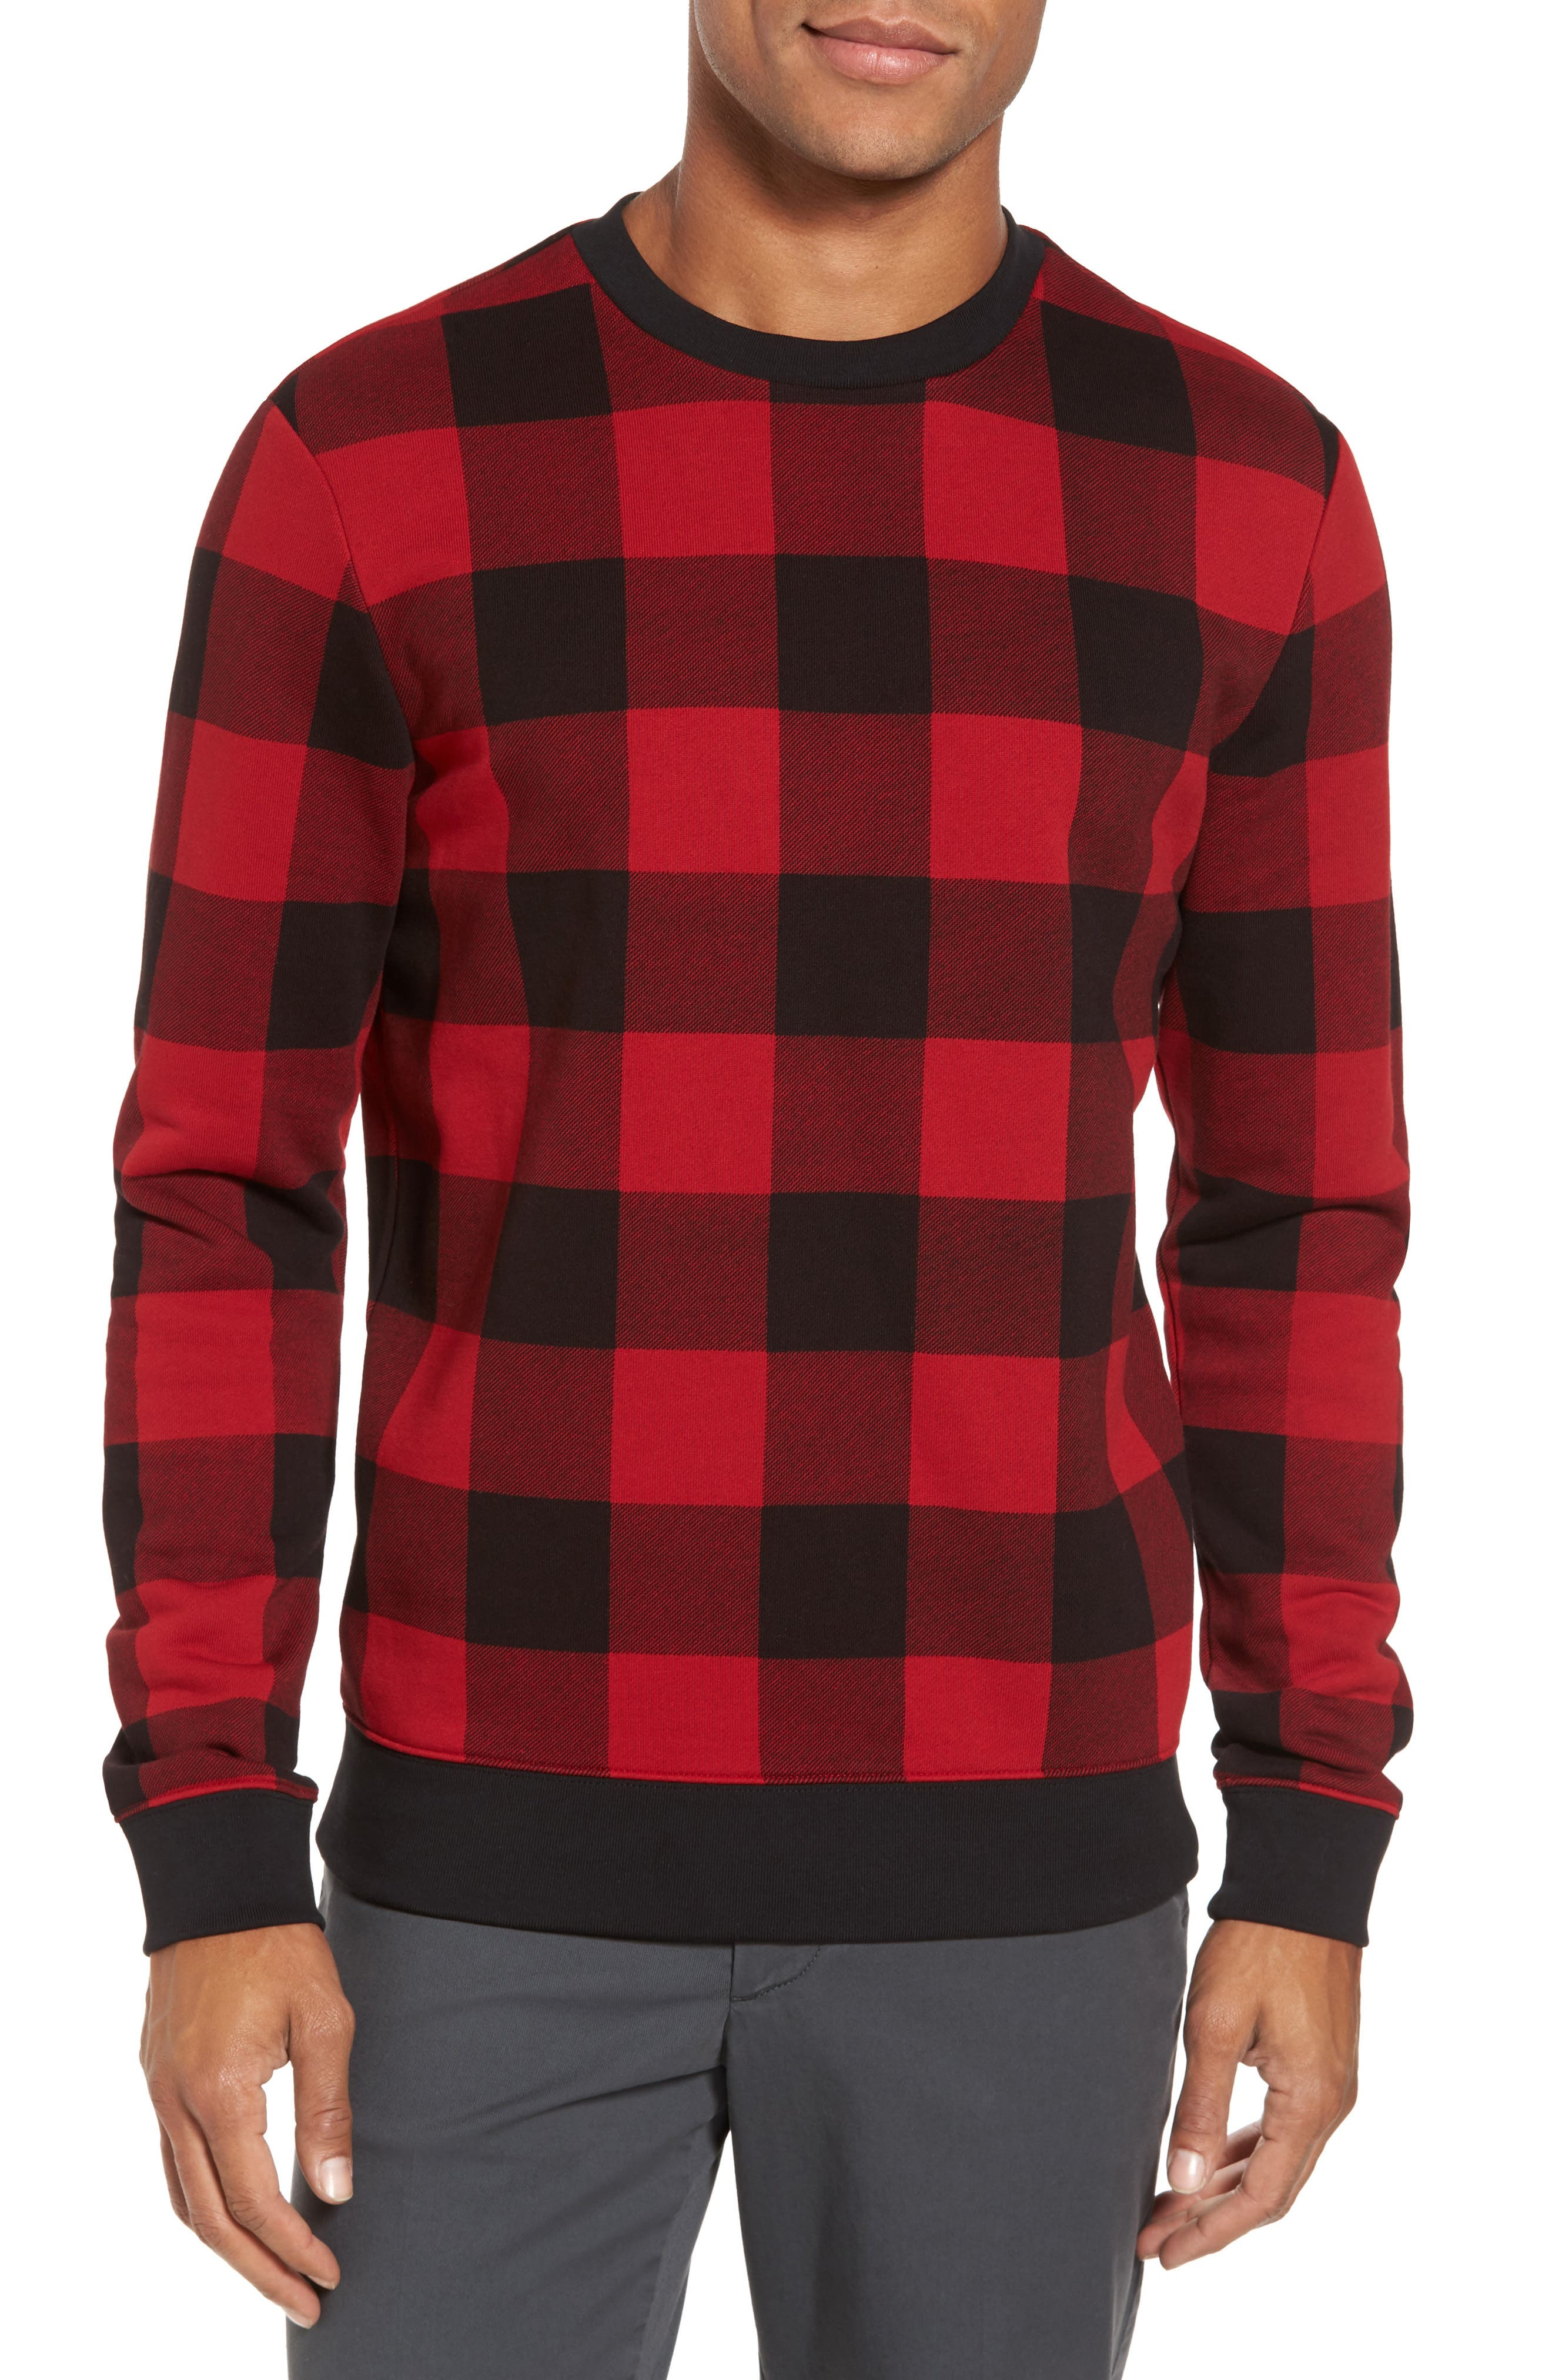 Skubic Check Slim Fit Sweater,                         Main,                         color, Red